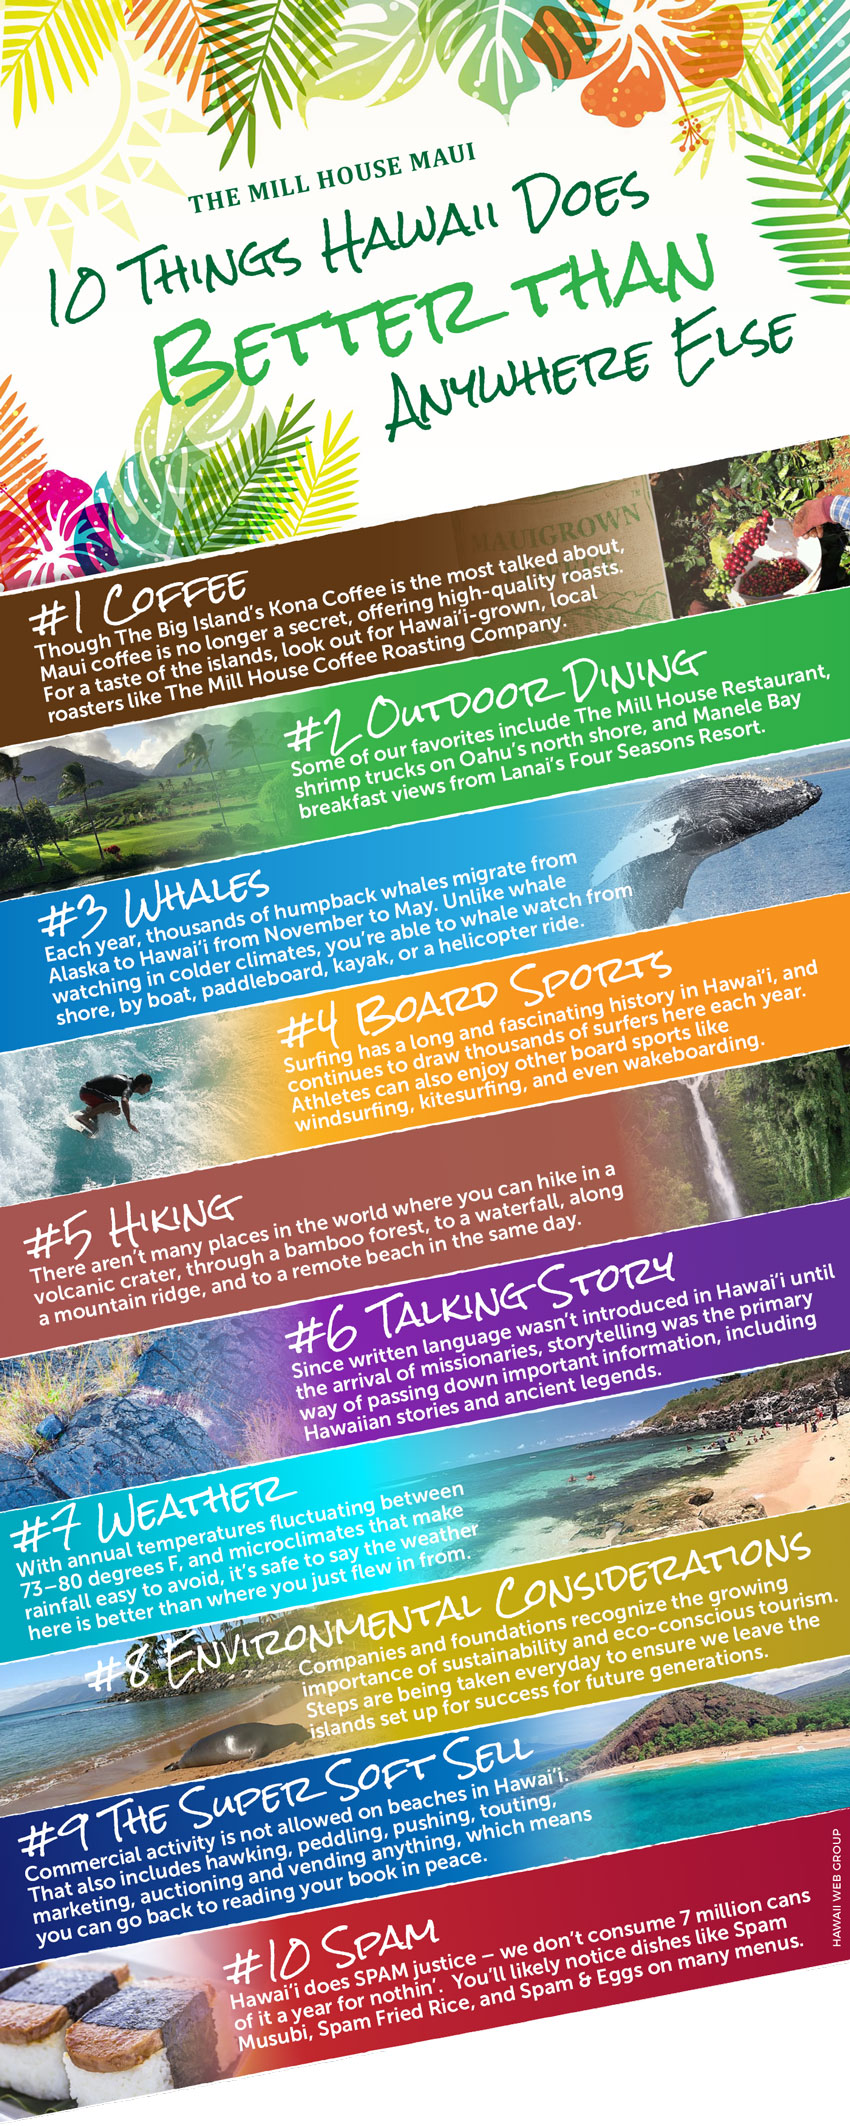 10 things hawaii does better than anywhere else infographic